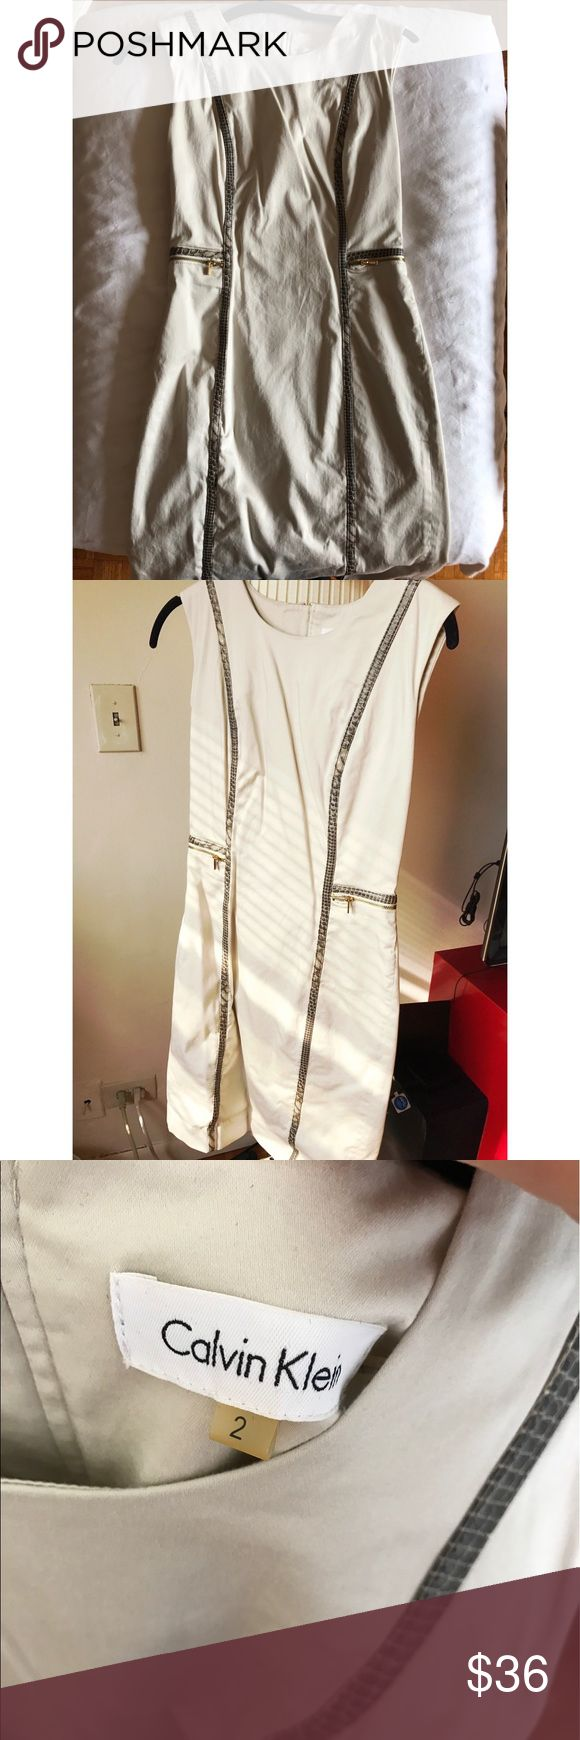 🌟SALe🌟Calvin Klein cream shift dress size 2 Calvin Klein cream shift dress size 2. Excellent condition. Worn only once. Cream shift dress with elegant accents to elongate your silhouette! Calvin Klein Dresses Mini